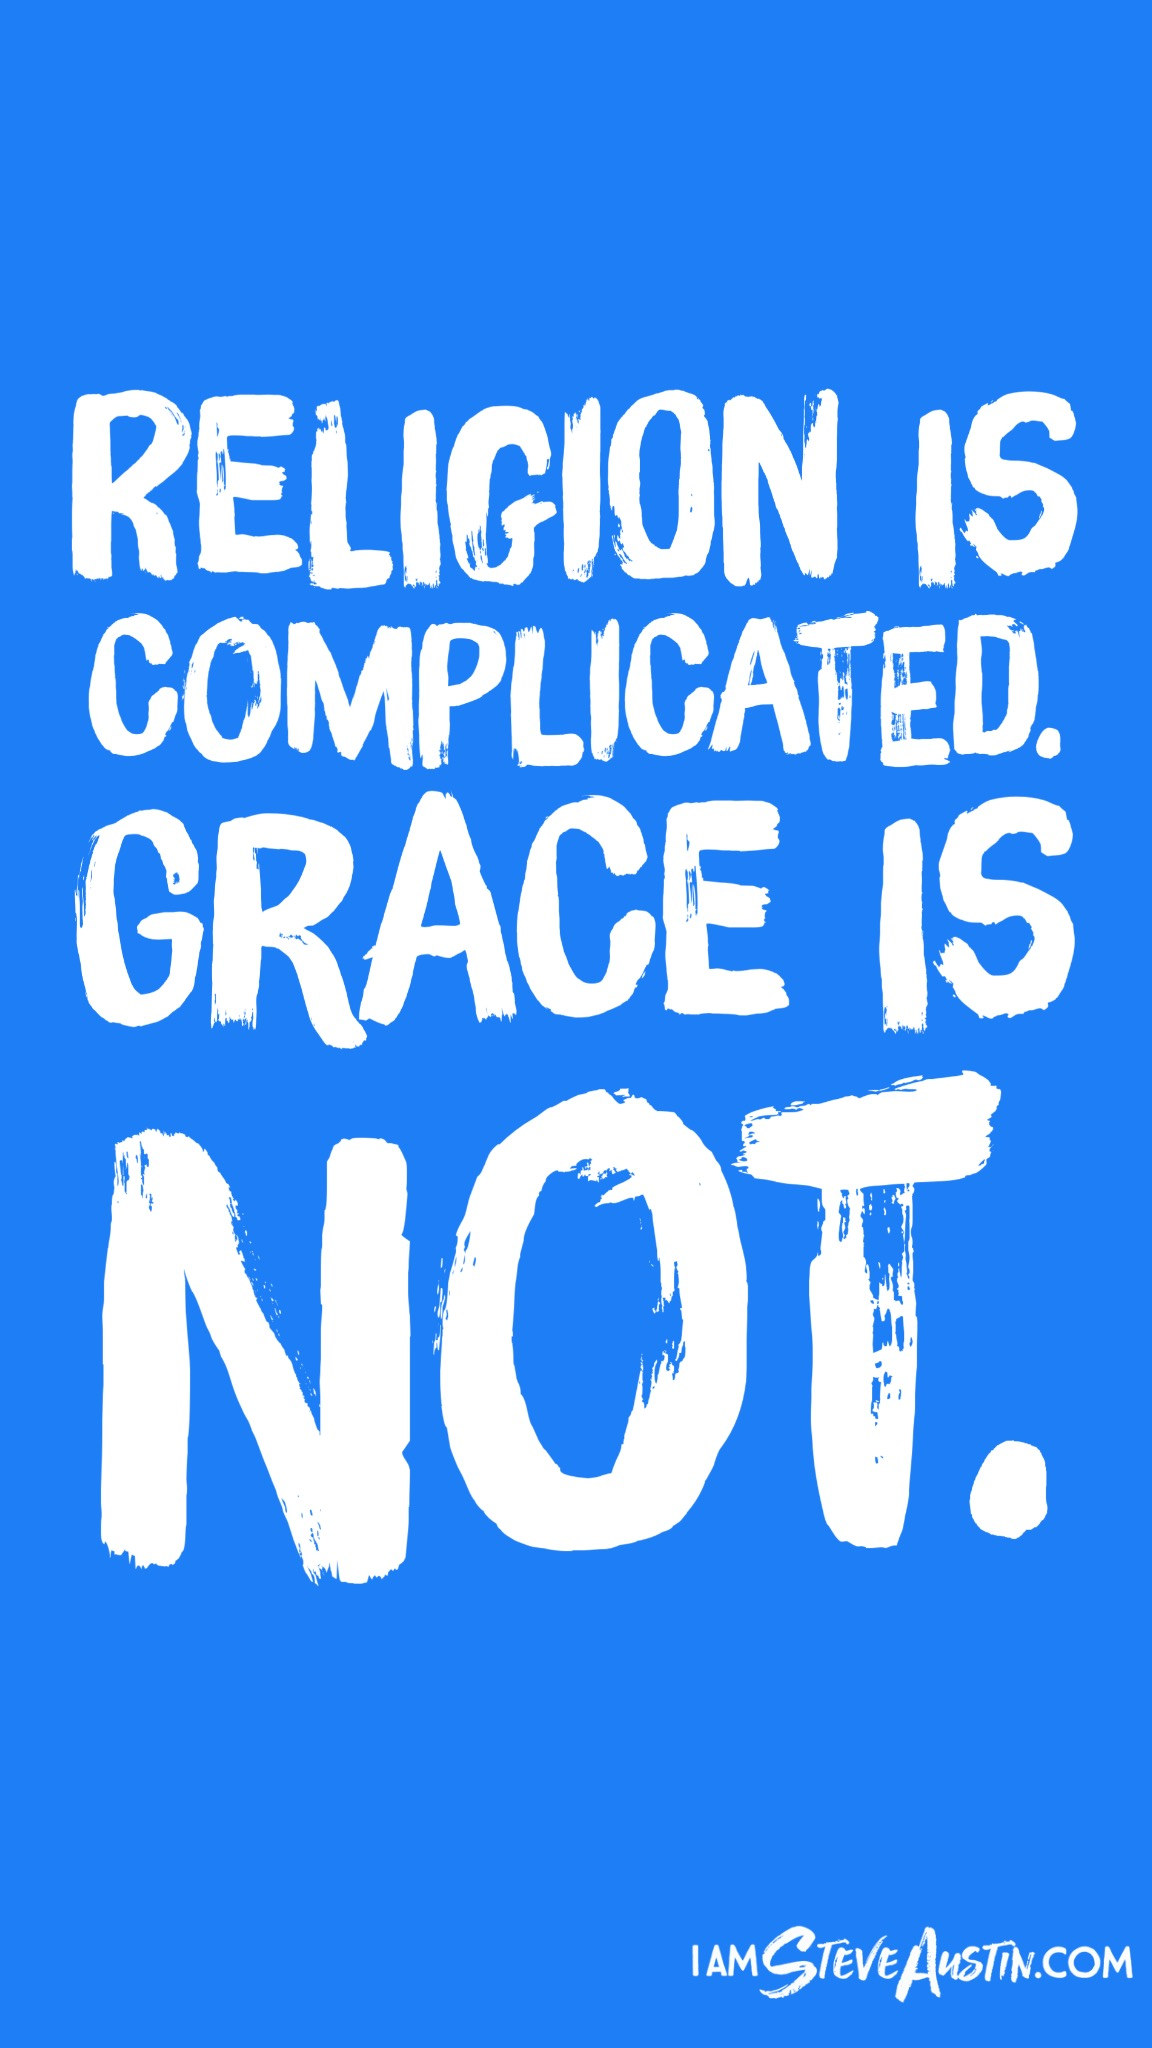 Religion is complicated. Grace is not. Steve Austin